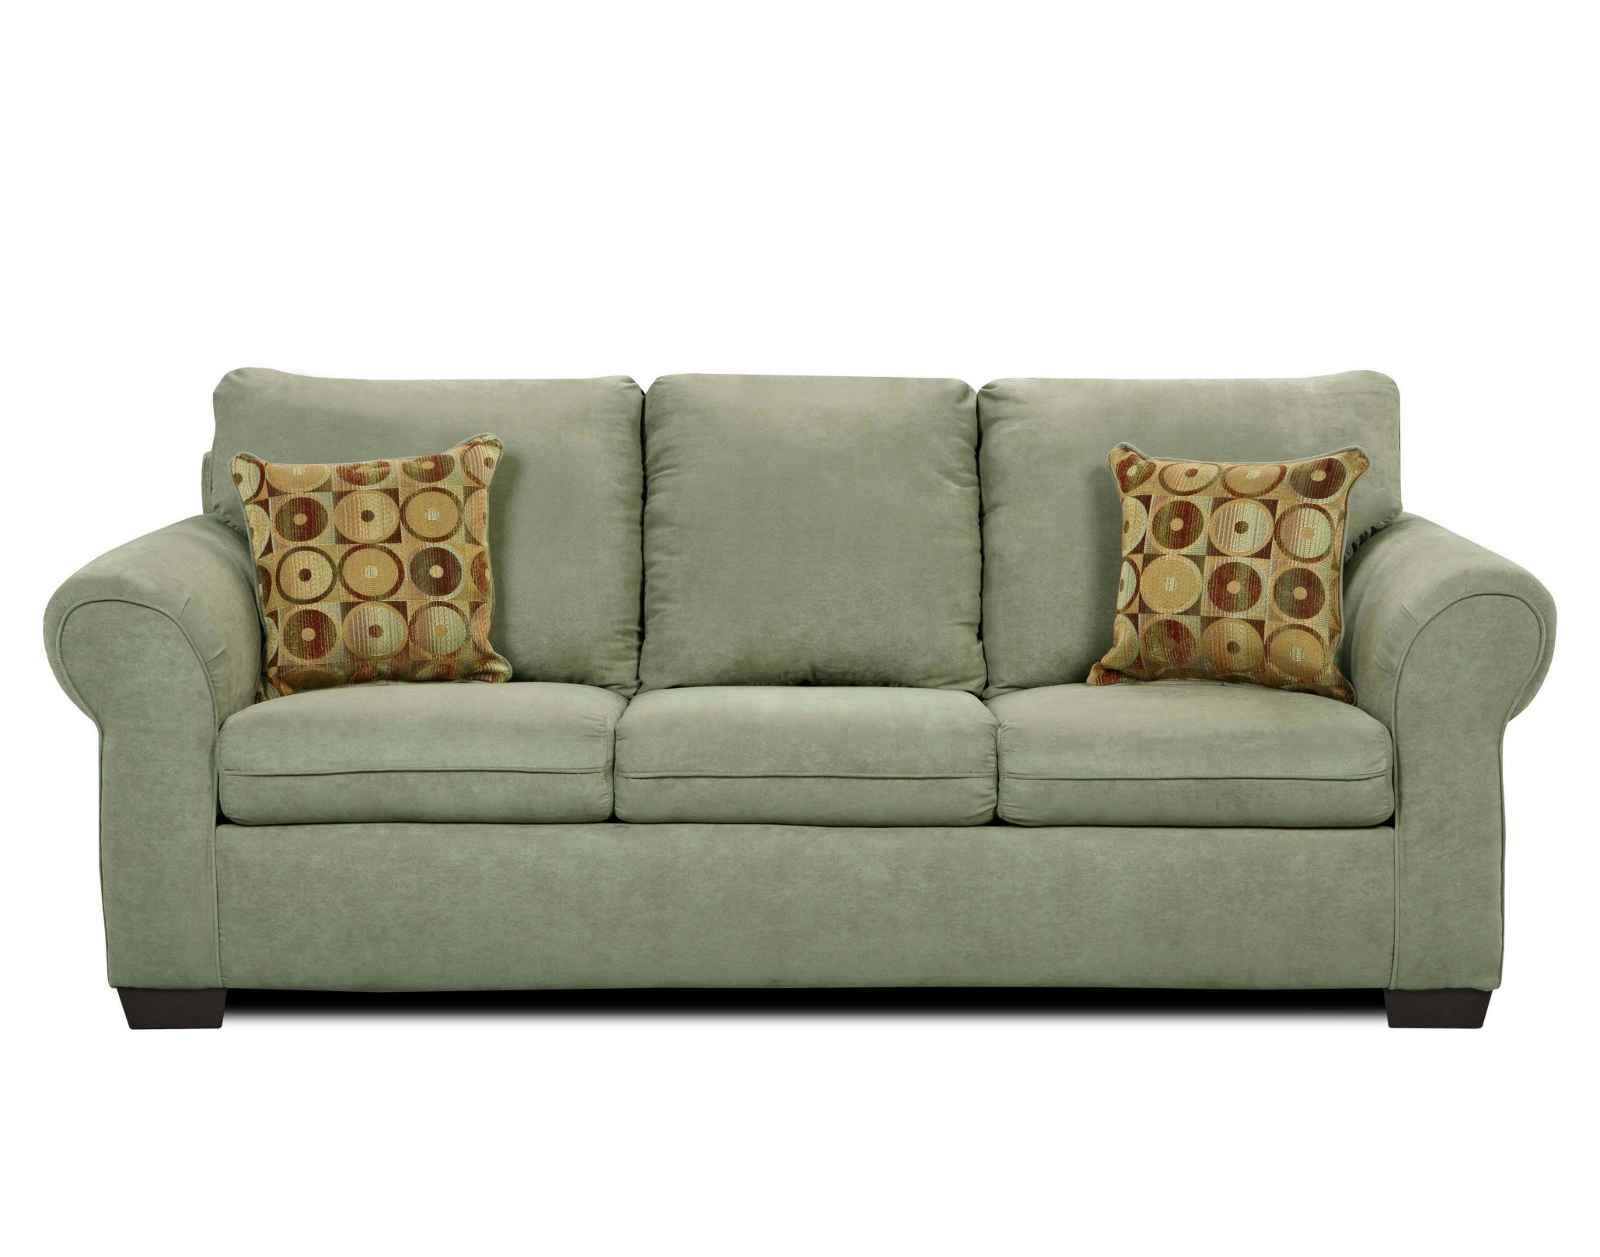 52 Sofas For Cheap Cheap Sofas The Biggest Chesterfield Sofa In Inside Cheap Sofa Chairs (Image 1 of 15)